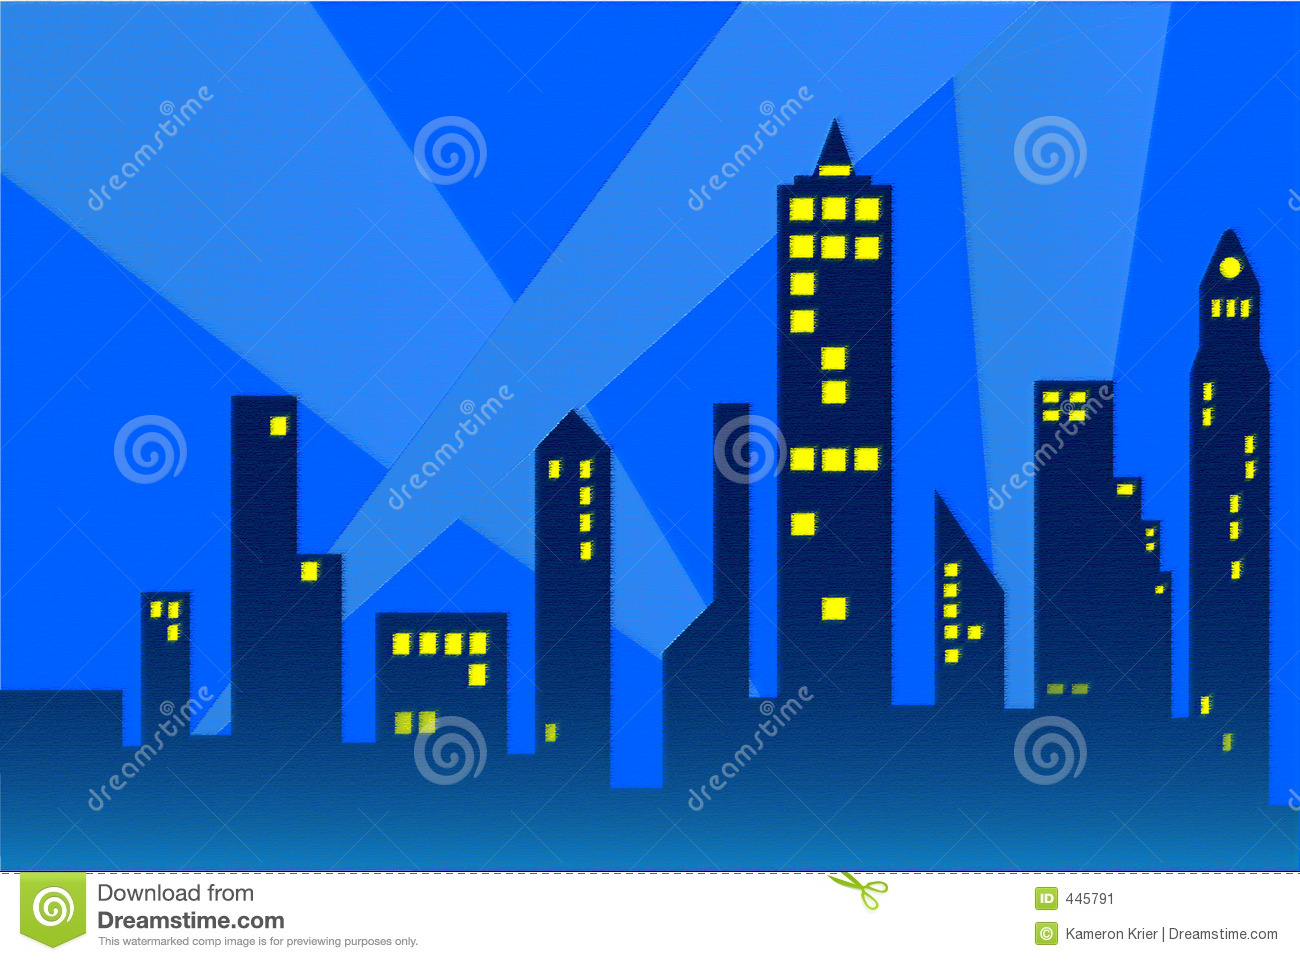 City Outline Stock Image - Image: 445791